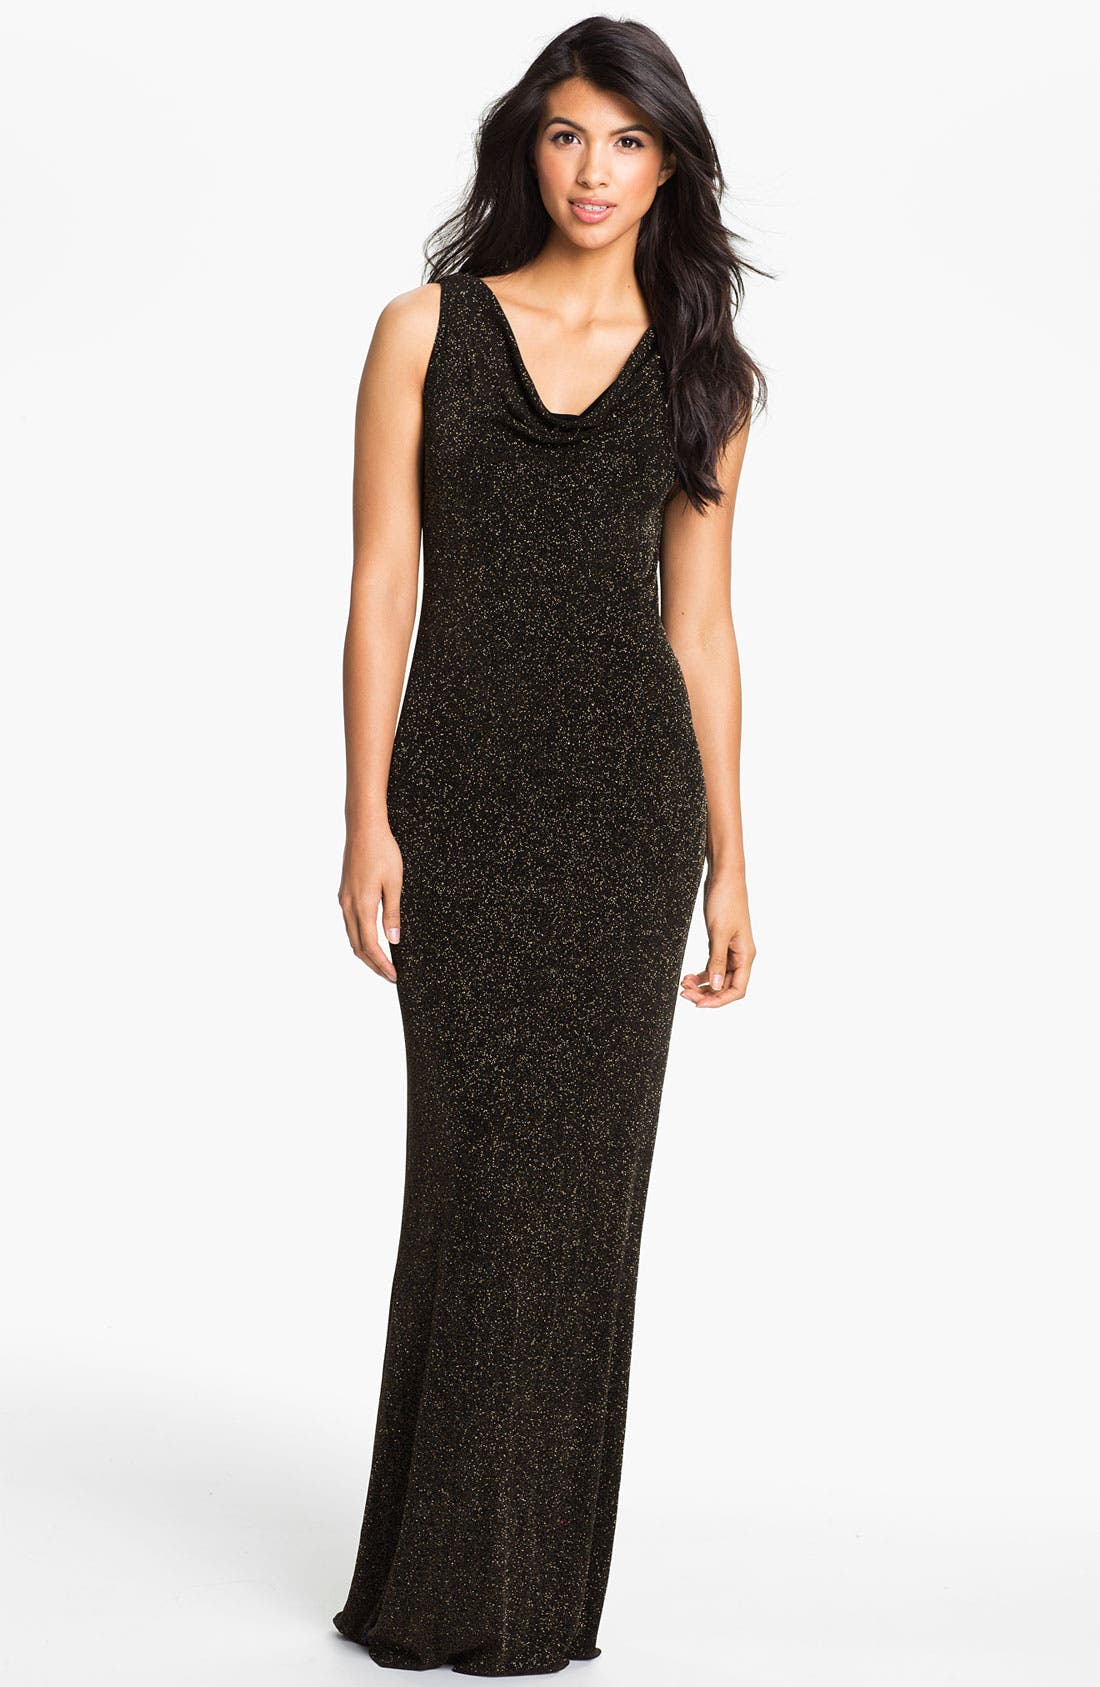 Alternate Image 1 Selected - Adrianna Papell Drape Back Glitter Jersey Gown